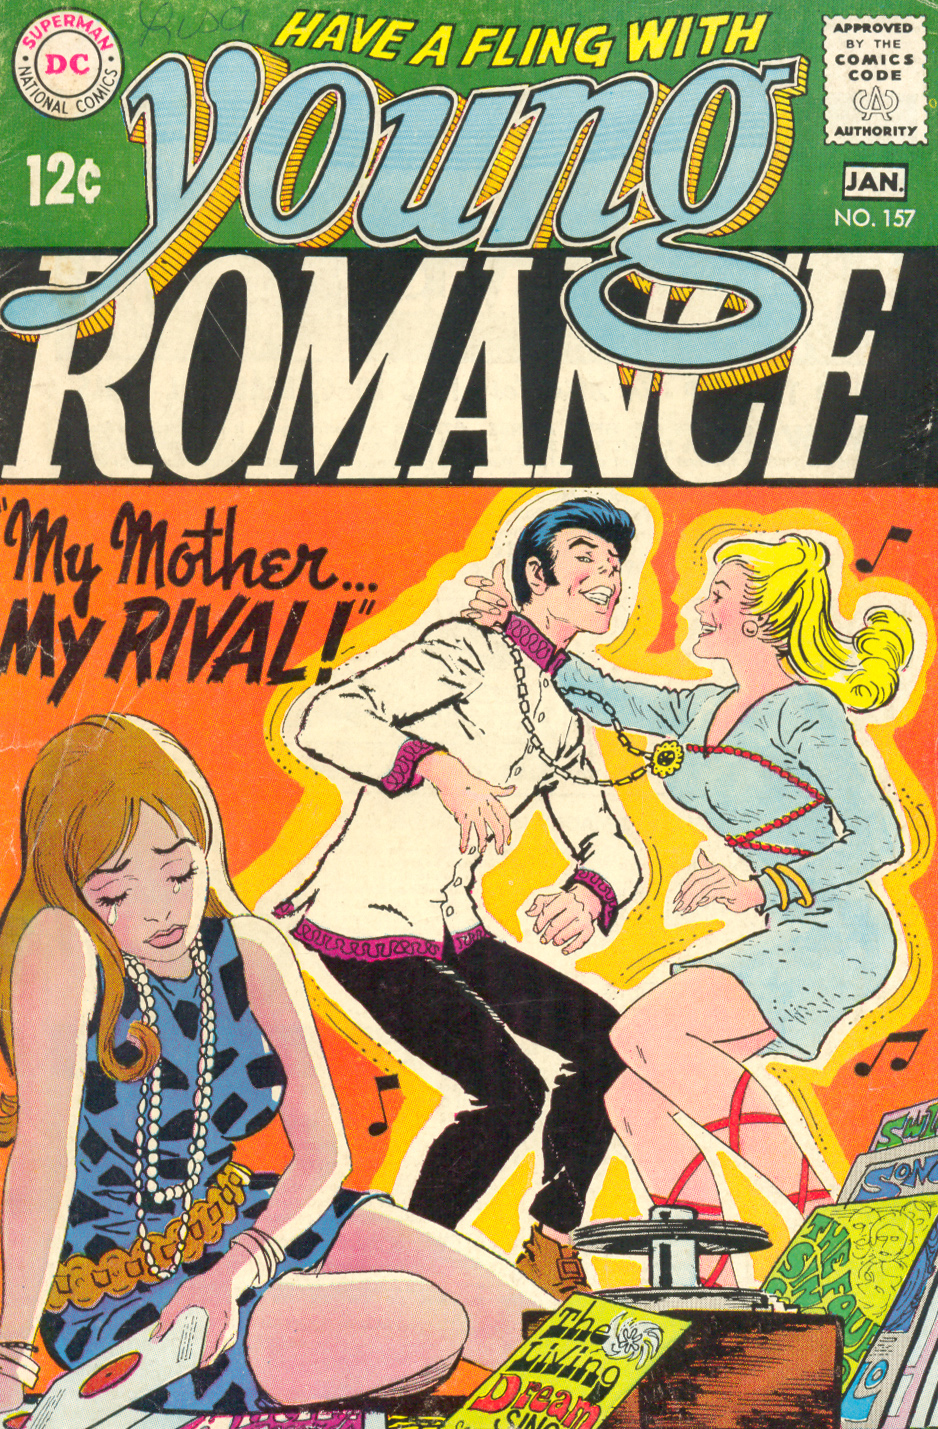 Young Romance  #157 (December 1968/January 1969)